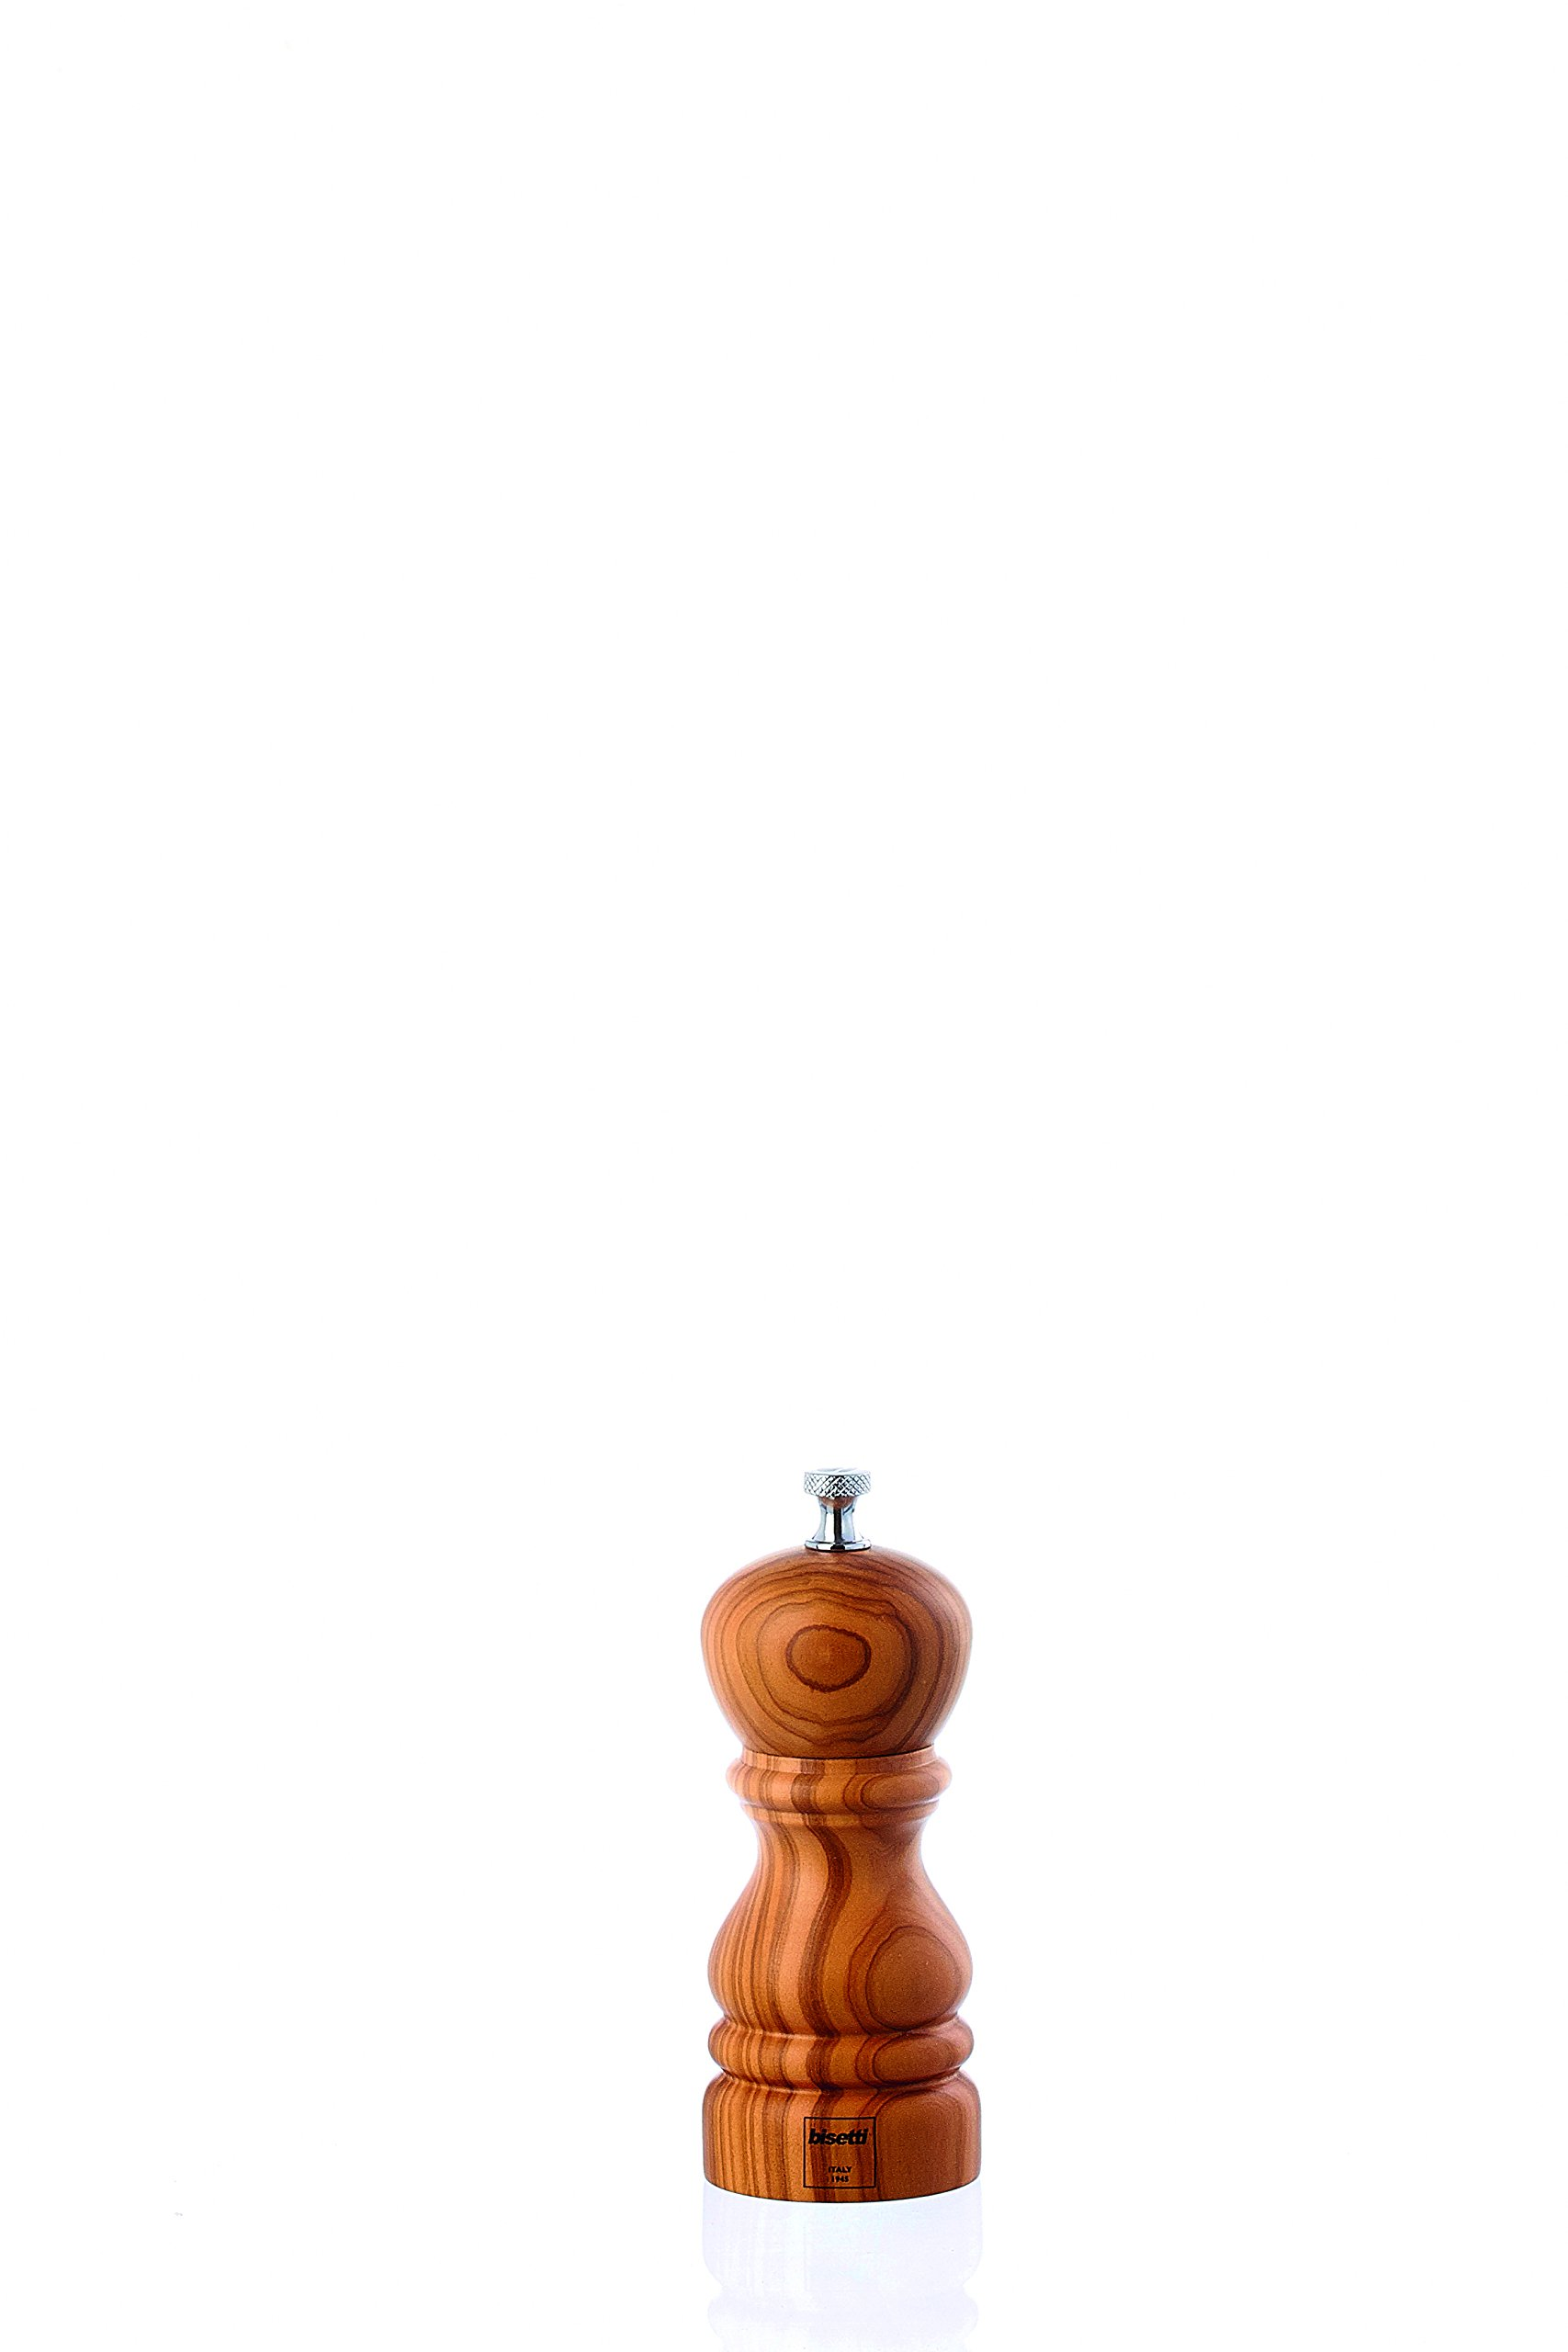 Bisetti BT-6150U Imperia Olive Wood Pepper Mill, 5.12-Inch, Natural by bisetti (Image #1)